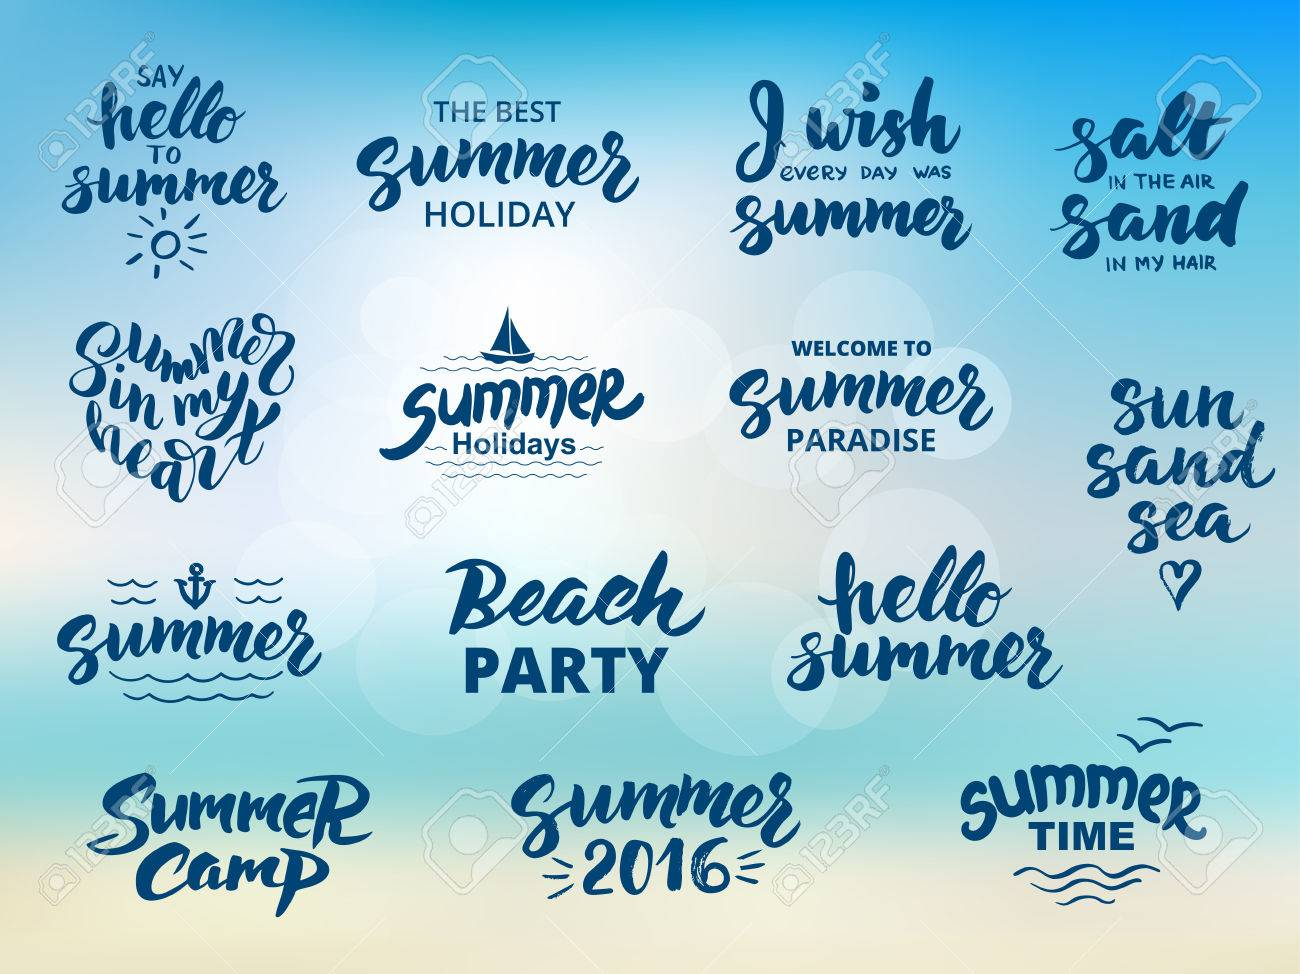 Summer hand drawn brush letterings. Summer typography - hello summer, summer camp, welcome to summer paradise, the best summer holiday, beach party, summer 2016. - 61107665